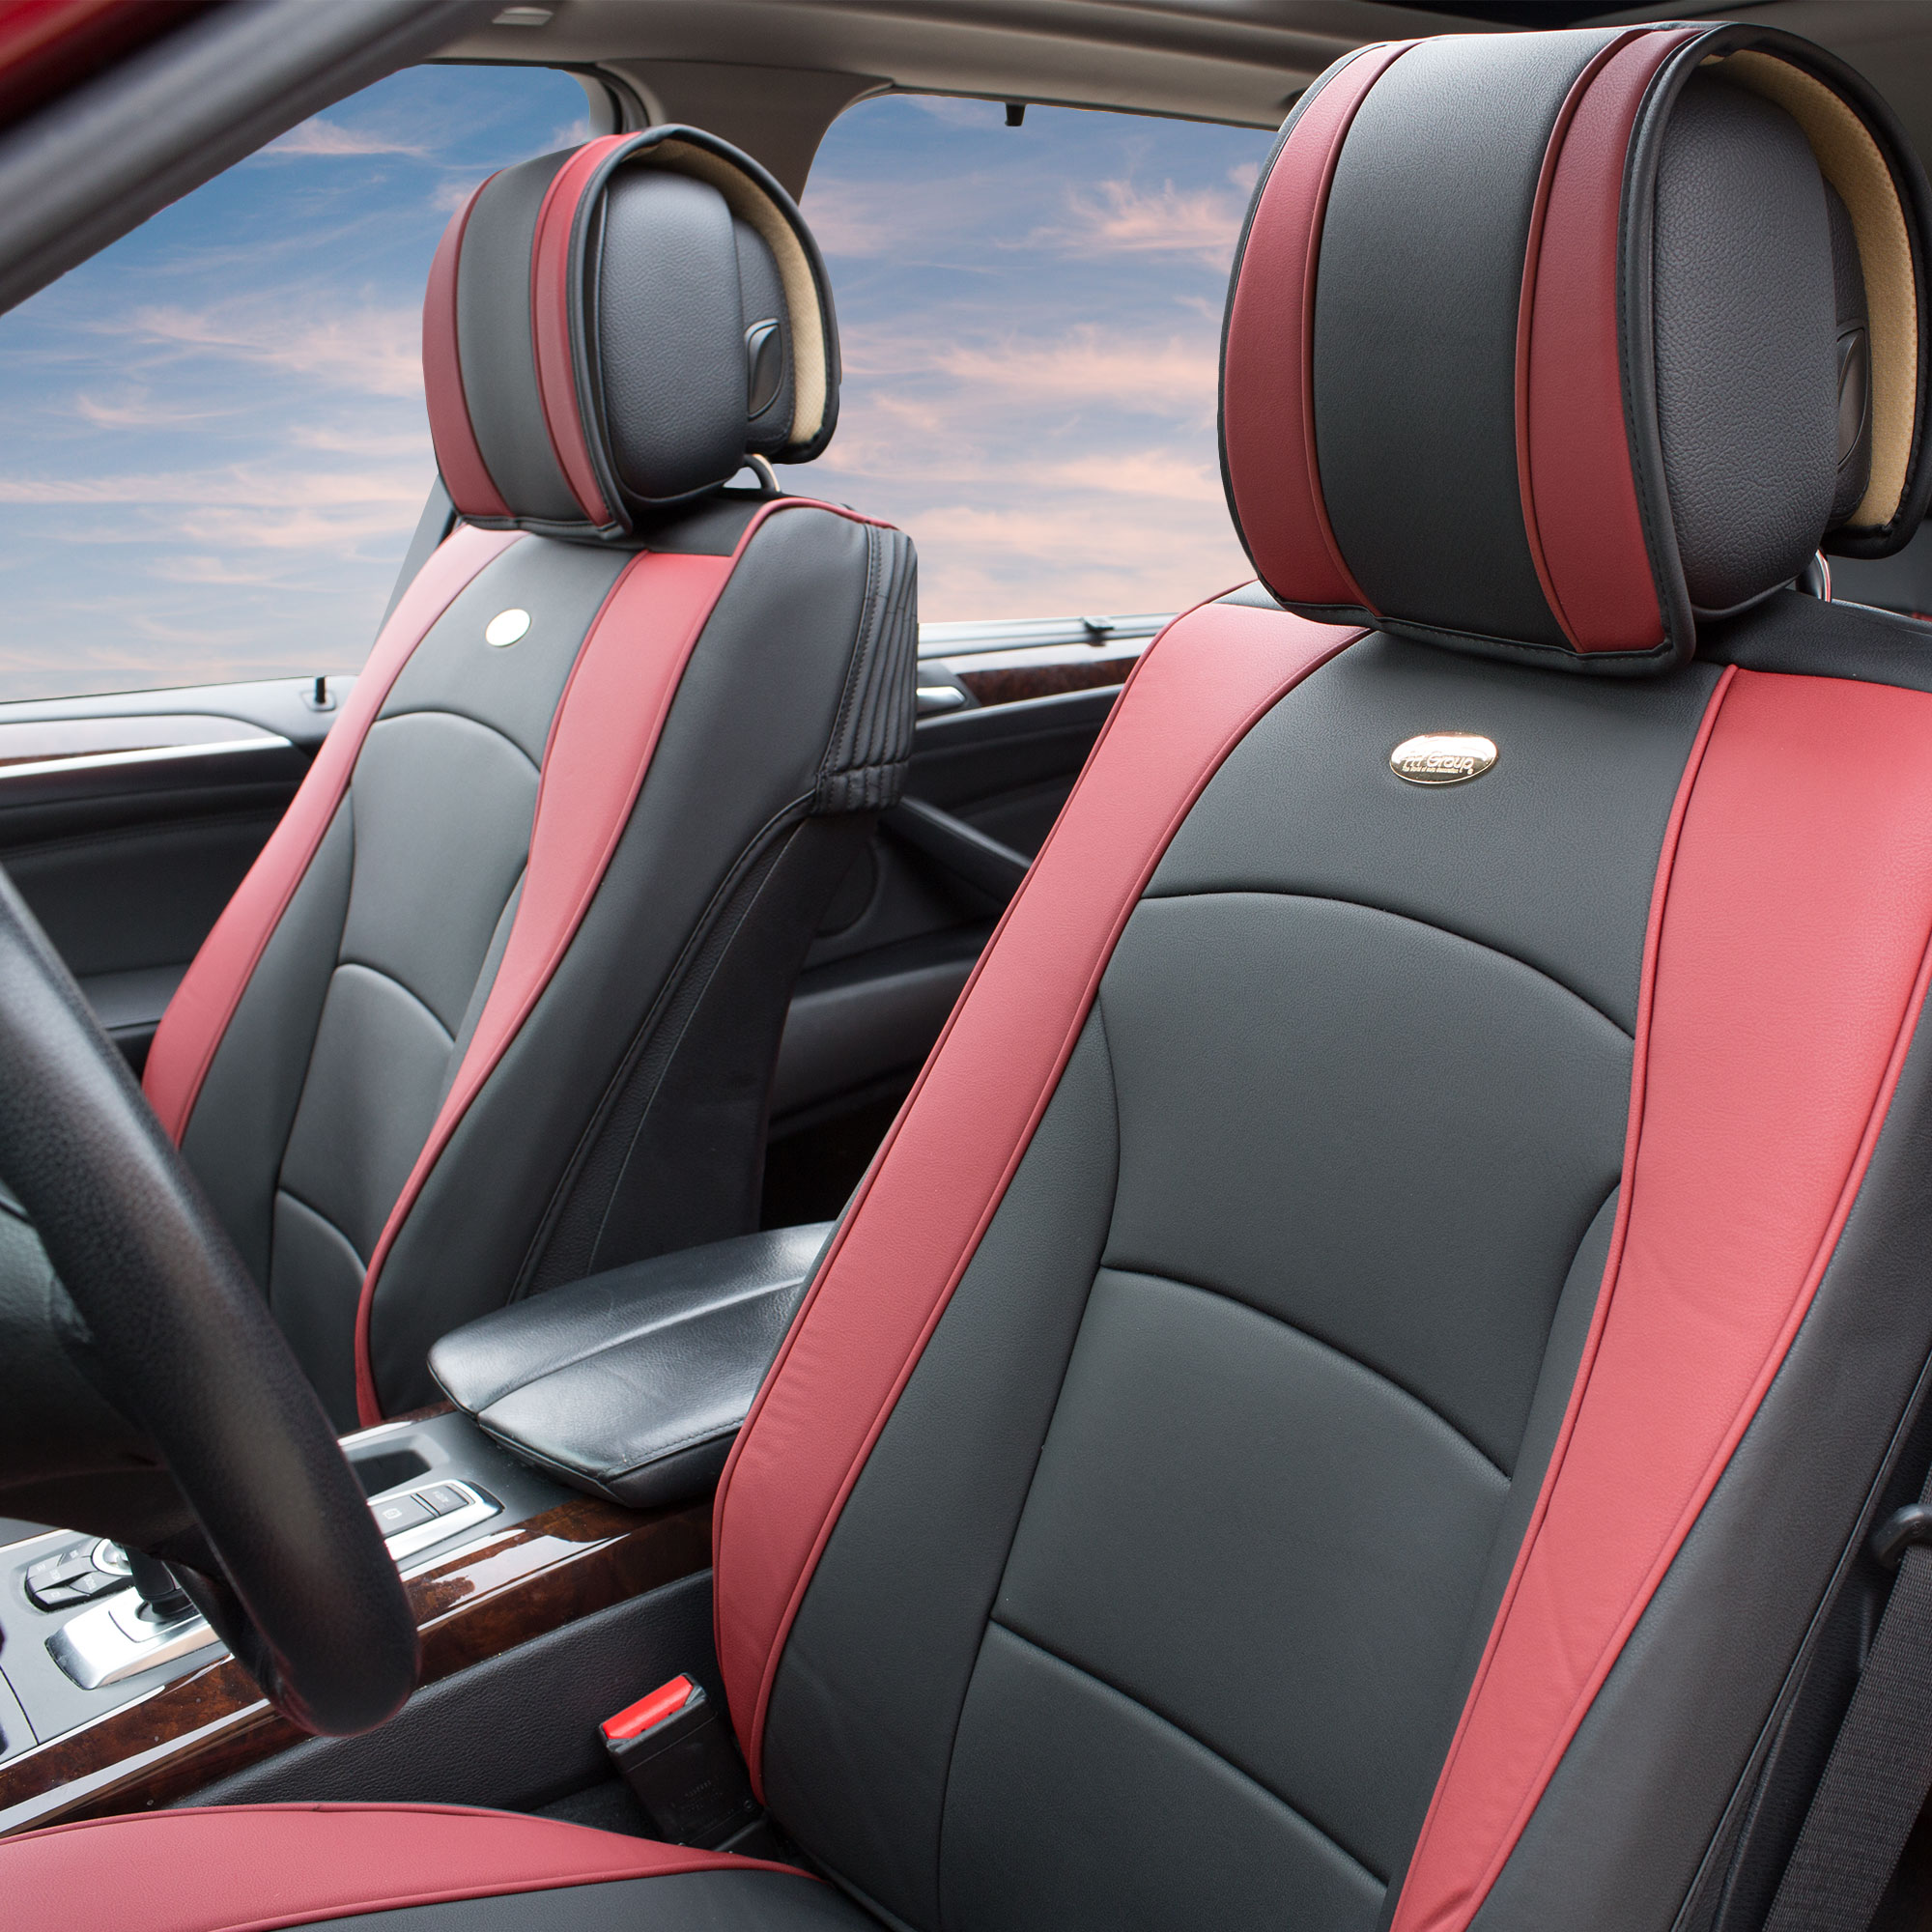 Luxury-Leather-Seat-Cushion-Covers-Front-Bucket-Pair-11-Color-Options thumbnail 29